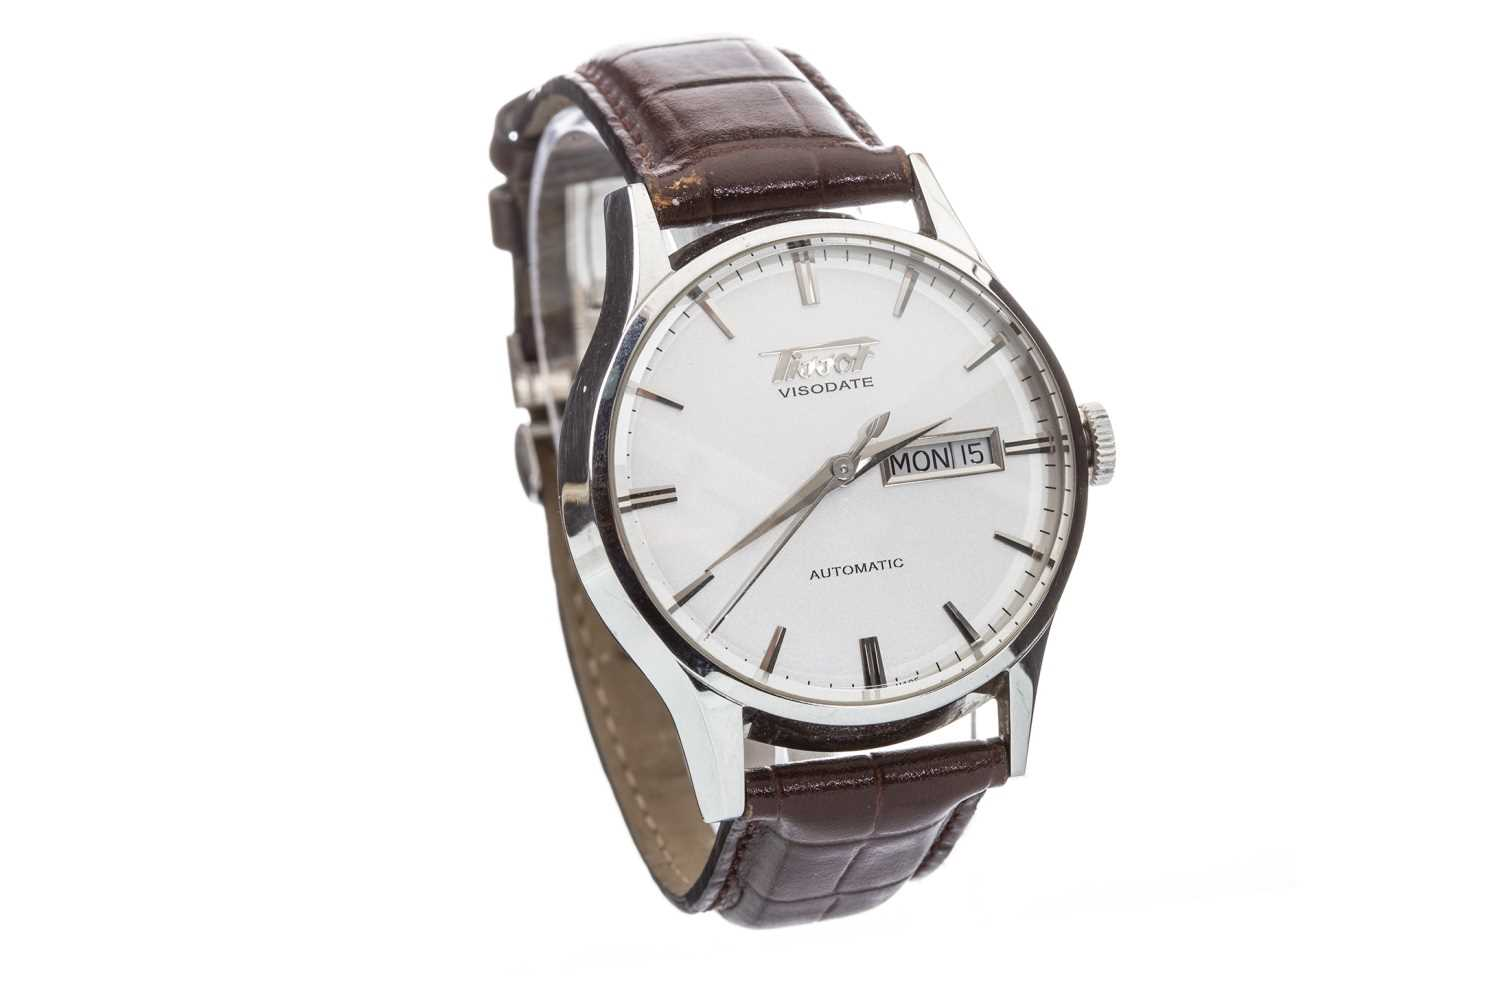 Lot 807-A GENTLEMAN'S TISSOT VISIODATE AUTOMATIC WATCH